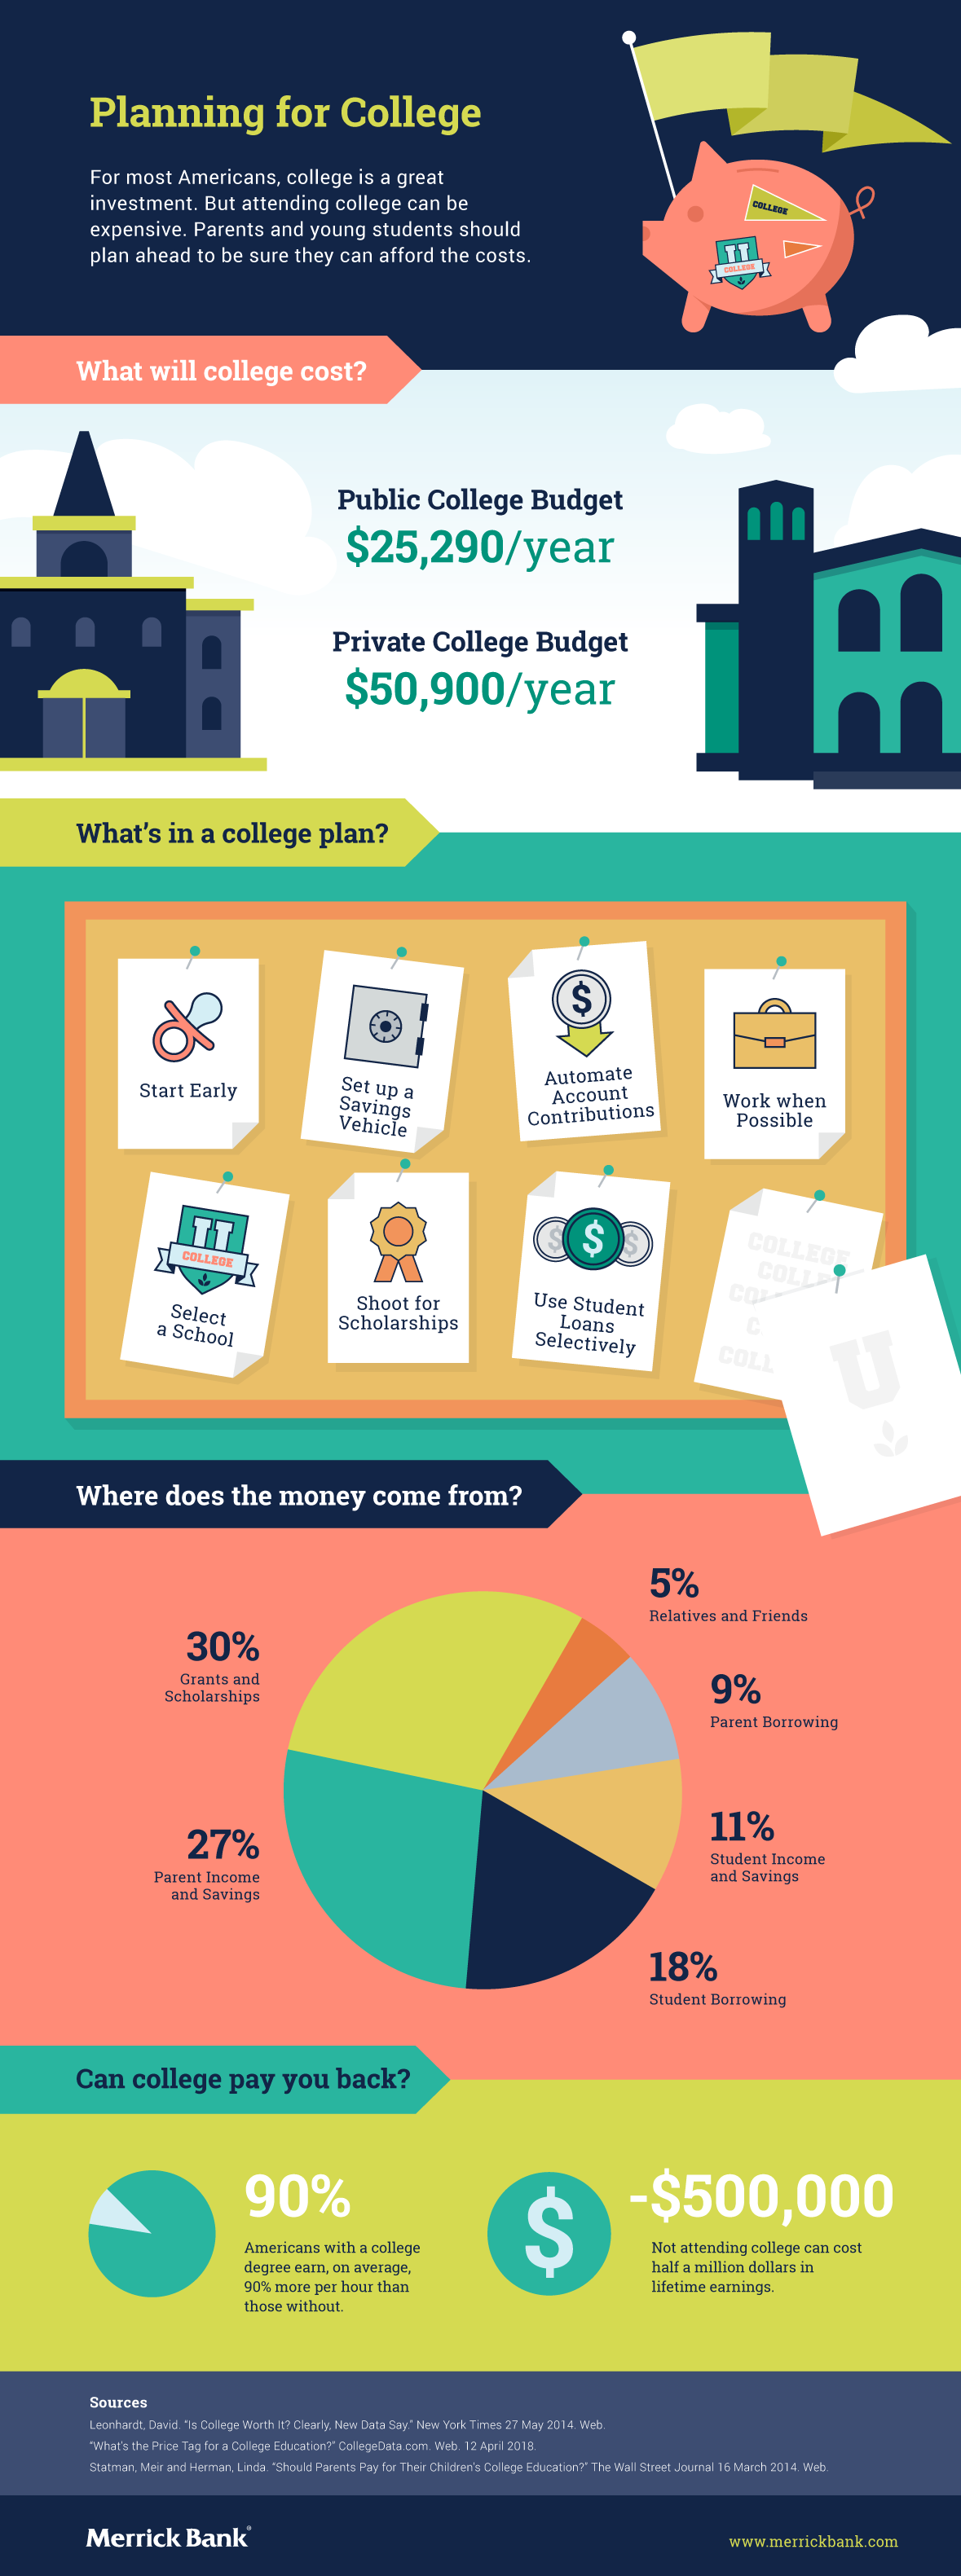 Planning for College Infographic